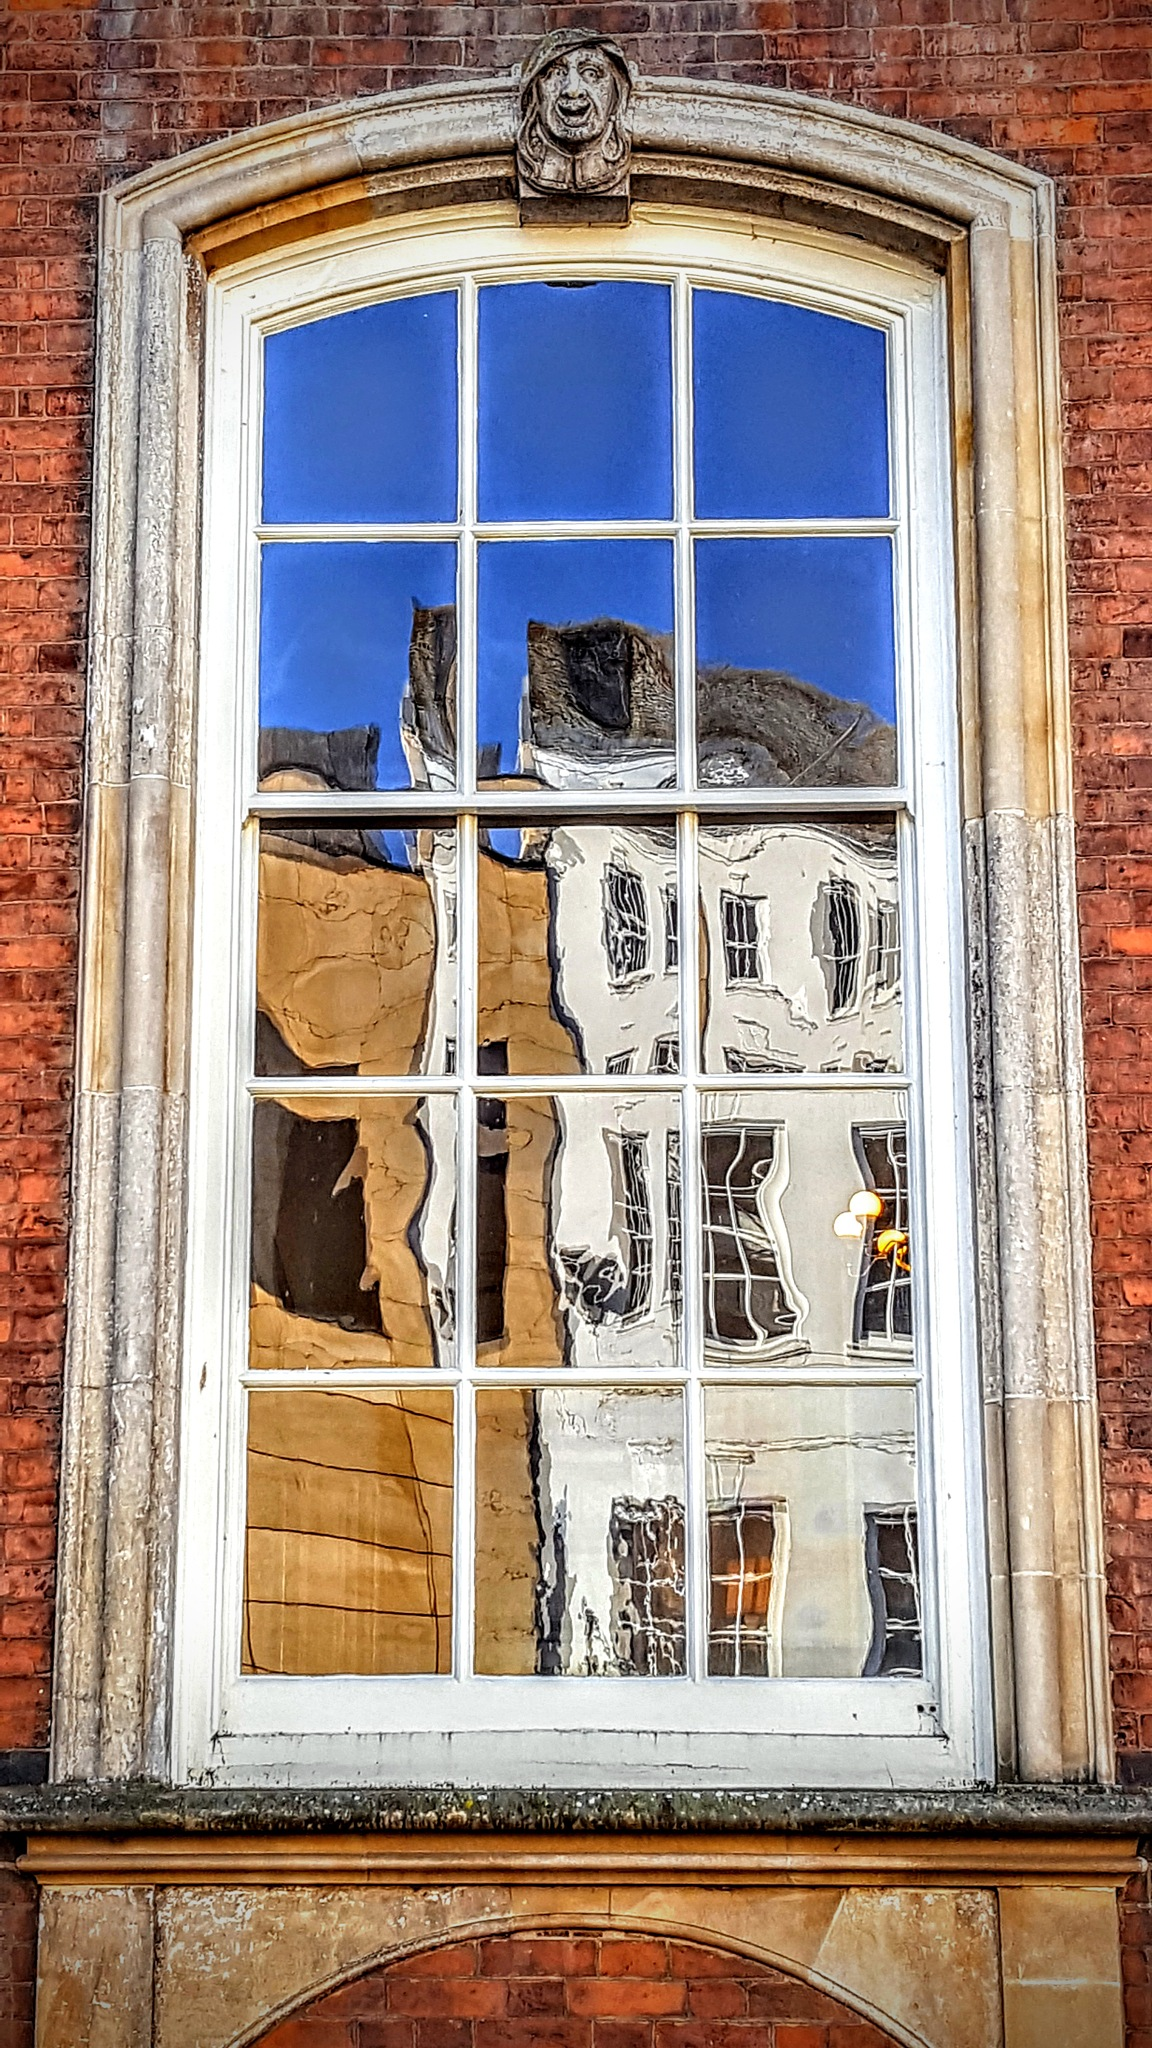 Reflective Window by Yvonne Lewis